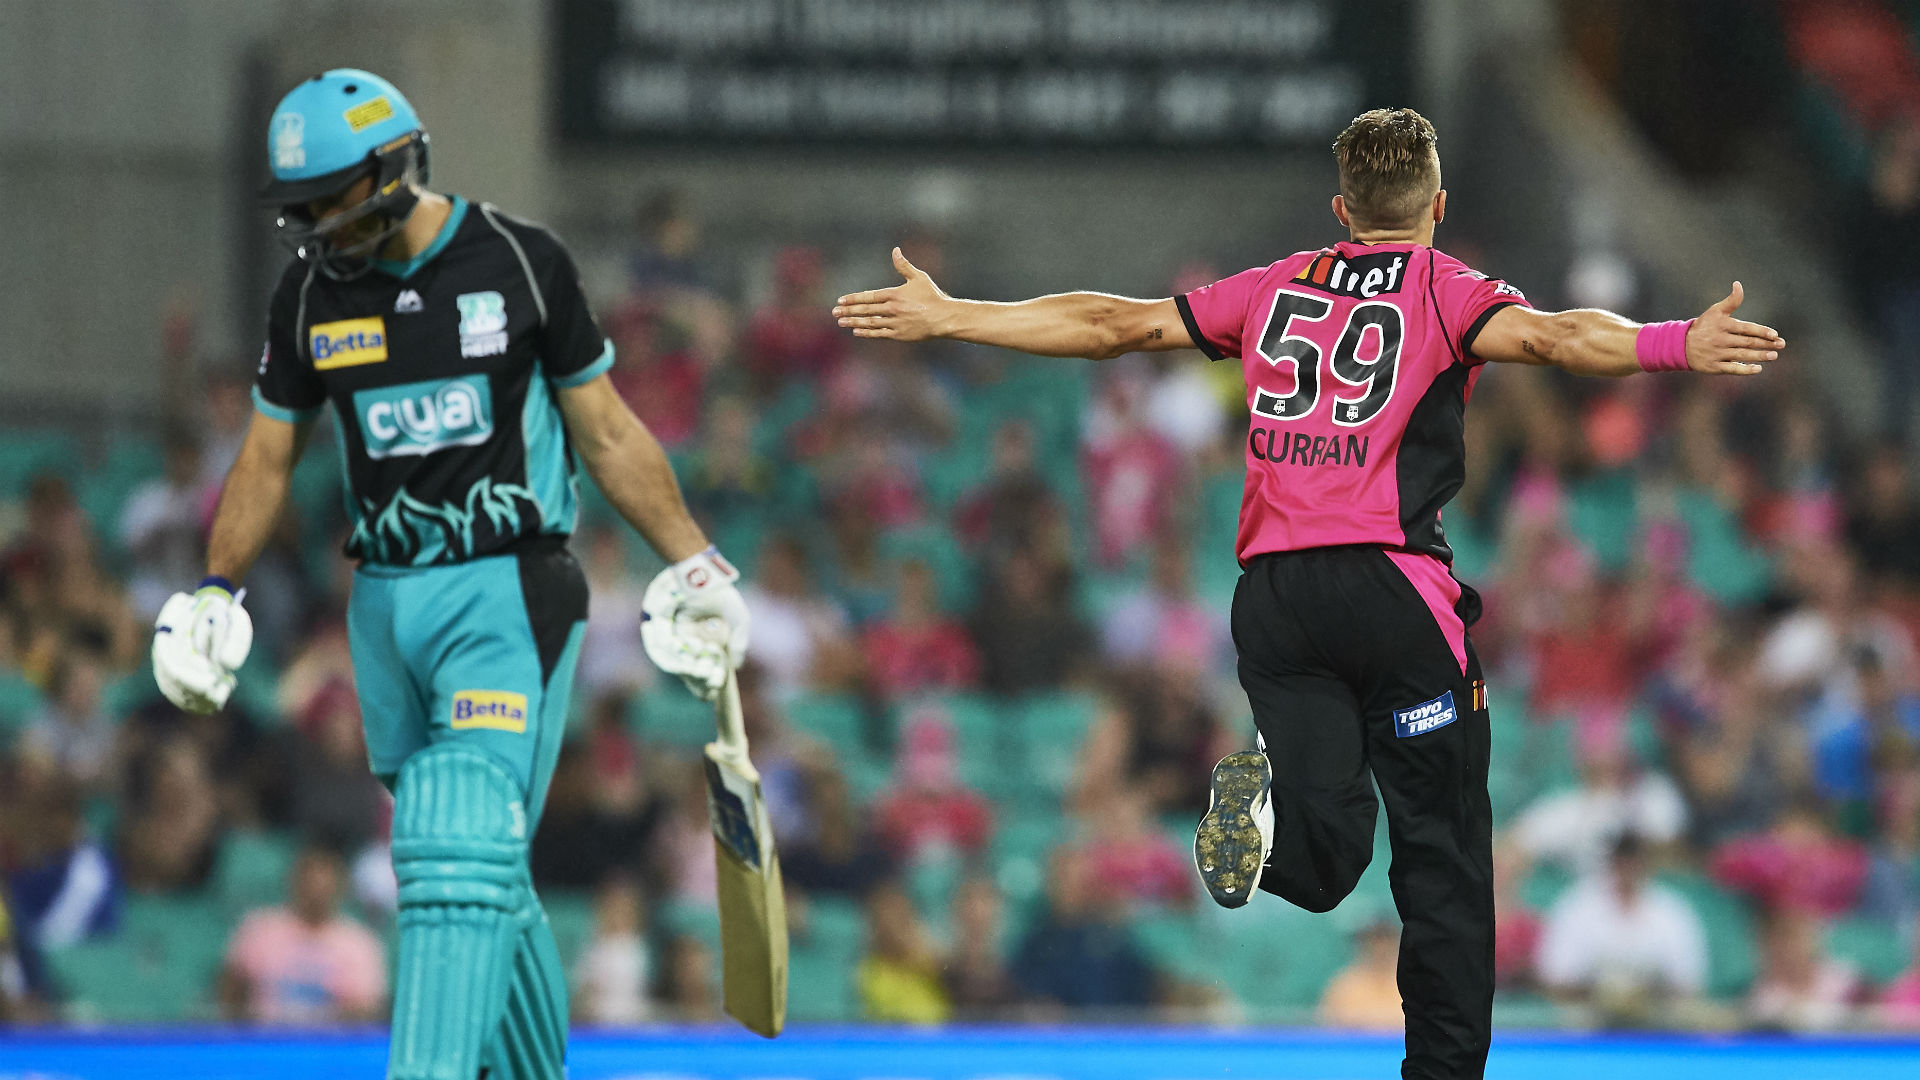 Vince, Curran star in Sixers win